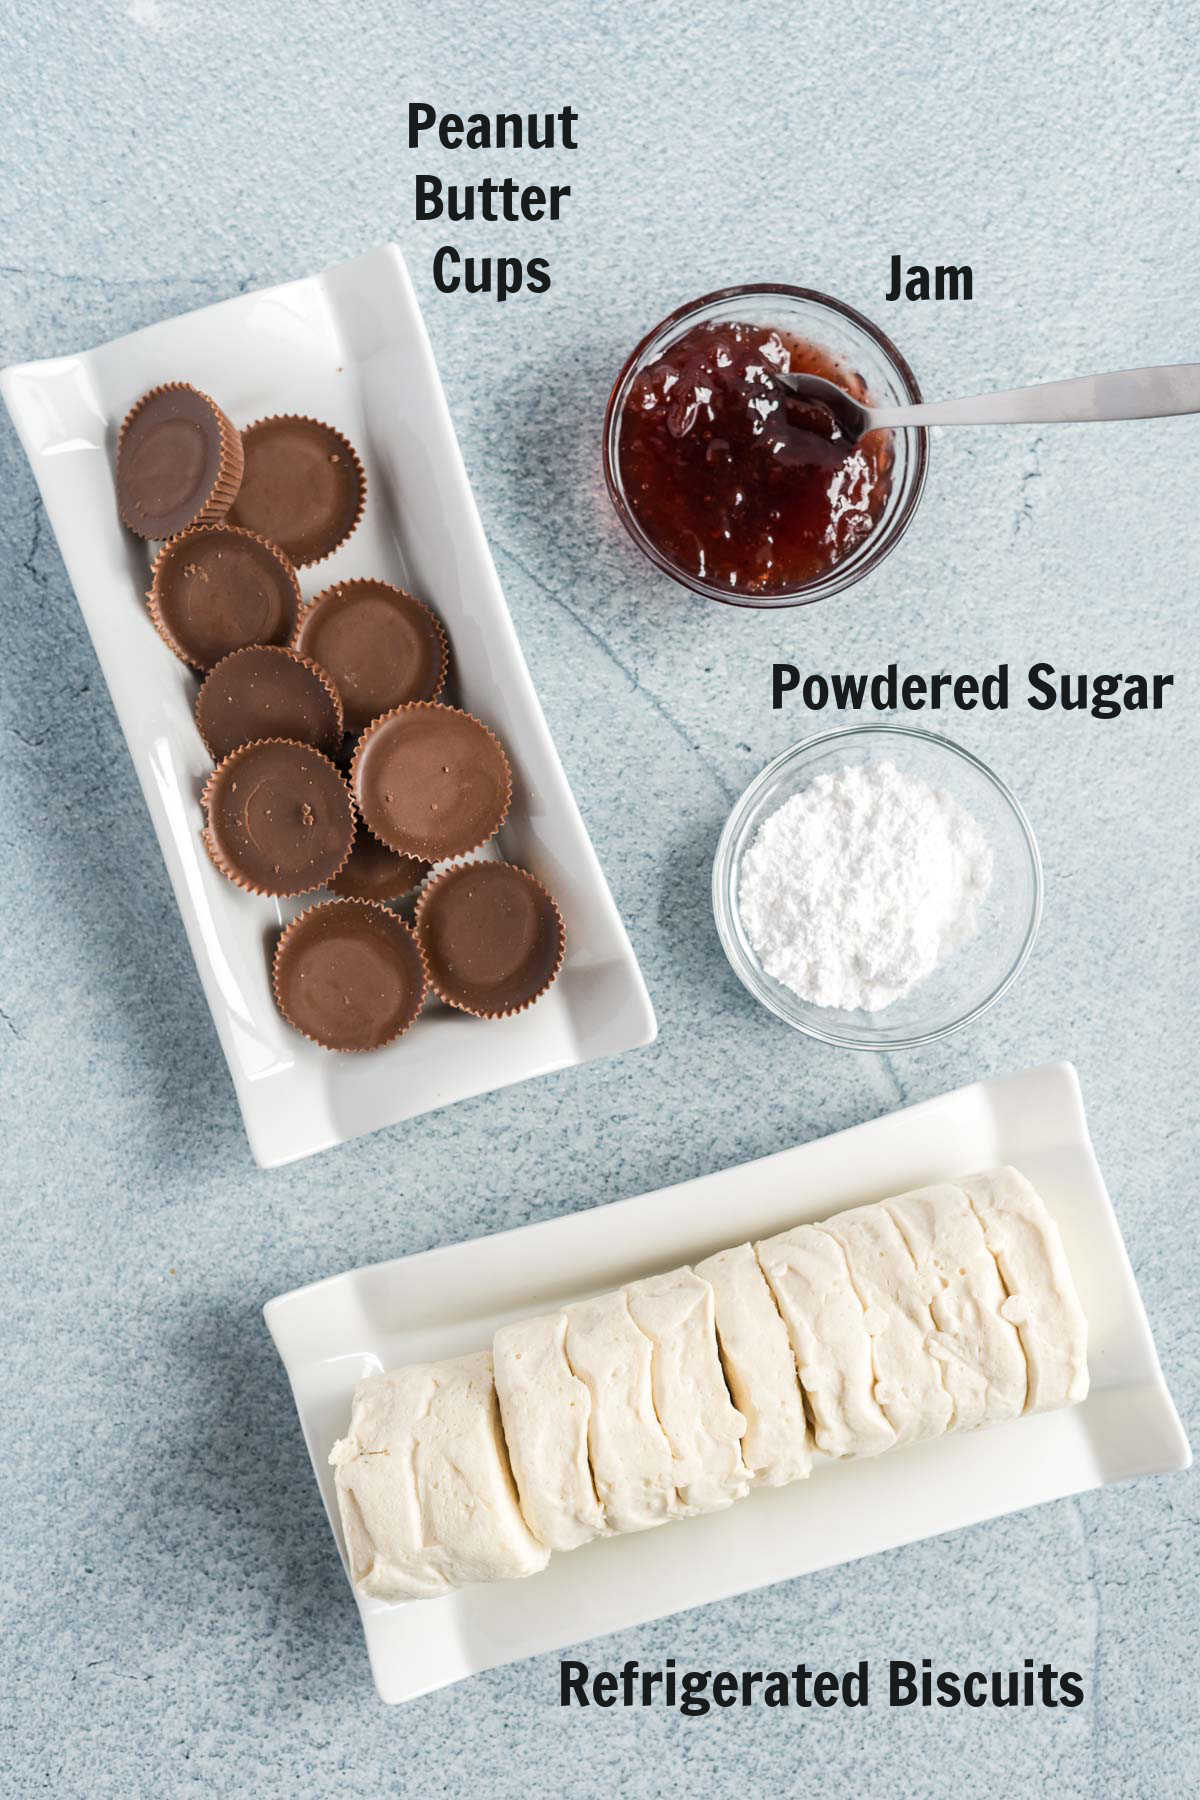 Ingredients for air fried peanut butter cups.